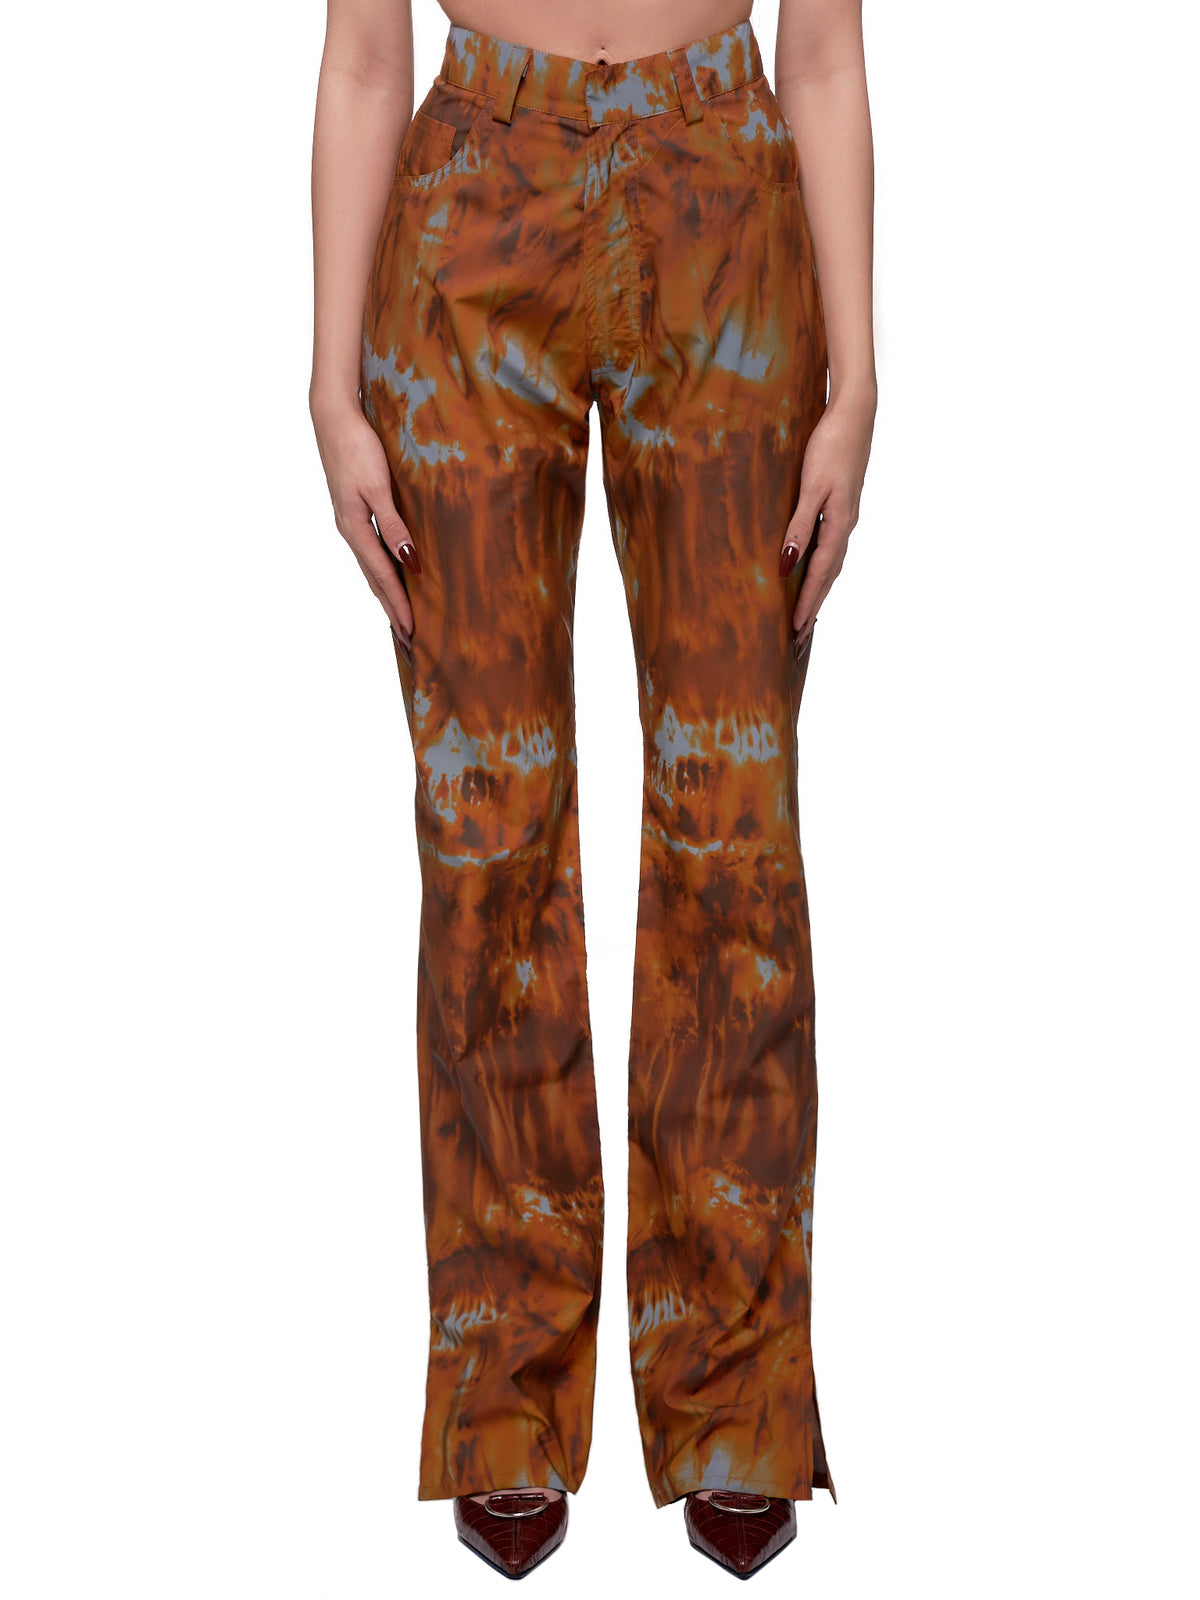 Lyonesse Trousers (LYONESSE-ORANGE-FLAMES)